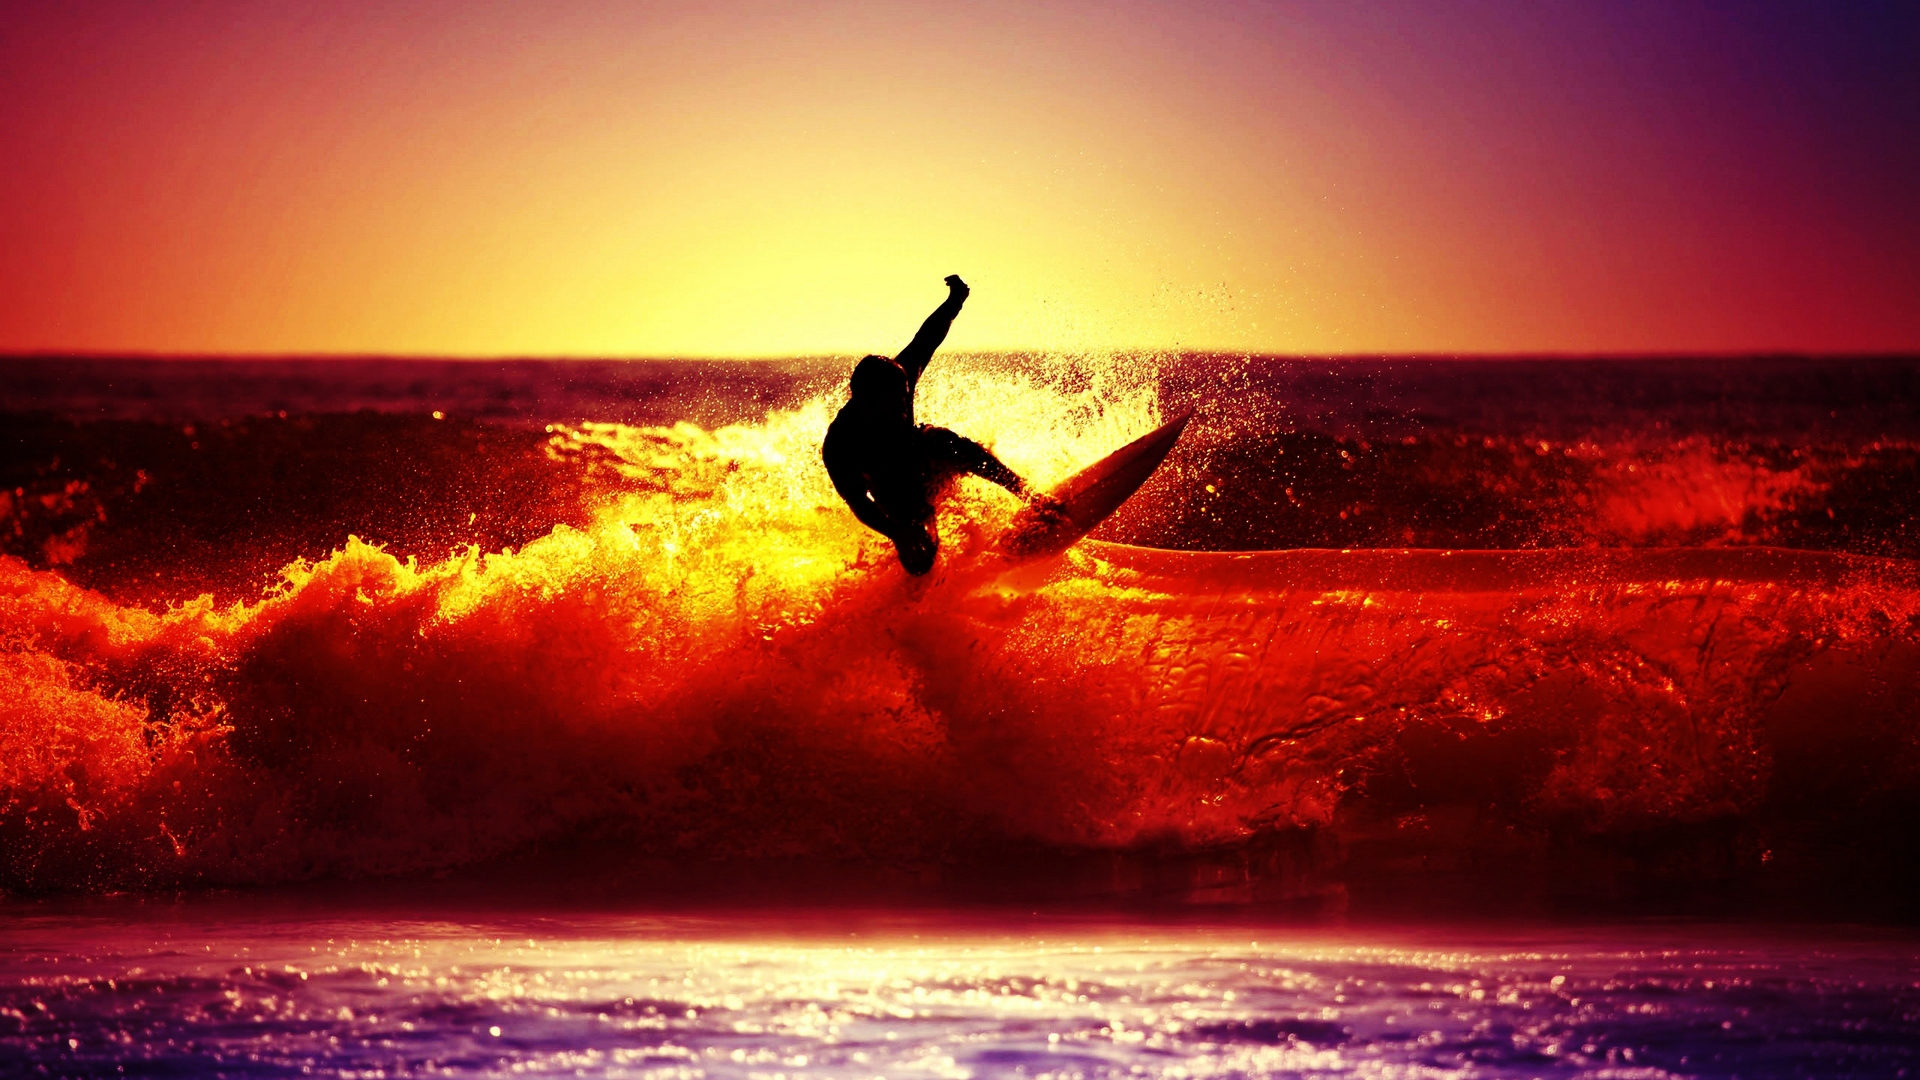 surfing wallpaper full hd - photo #30